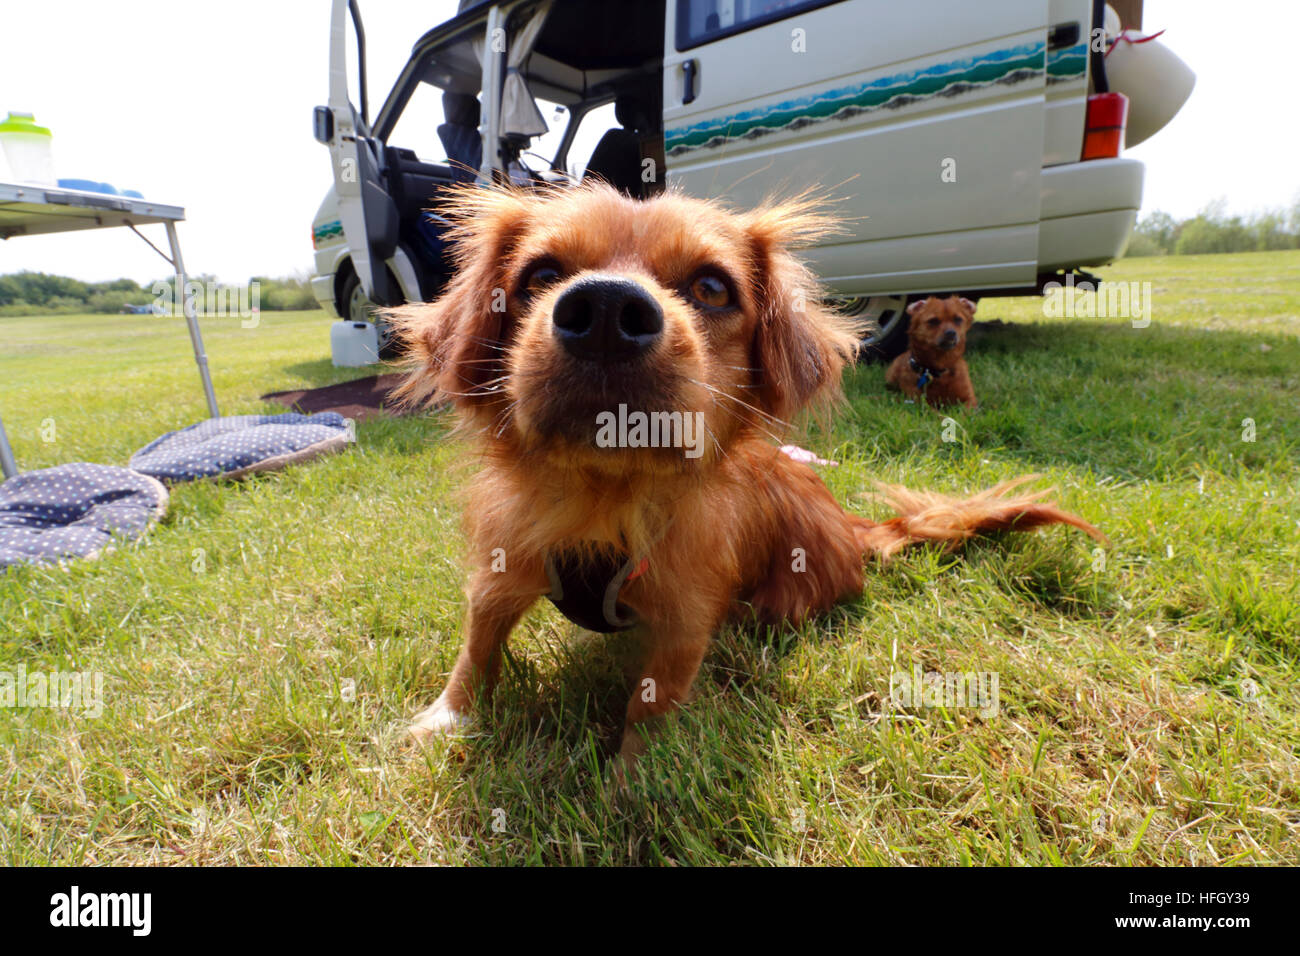 17a9cb9d70ea7e Dogs in front of a VW T4 camper van at a campsite in Oxfordshire - Stock